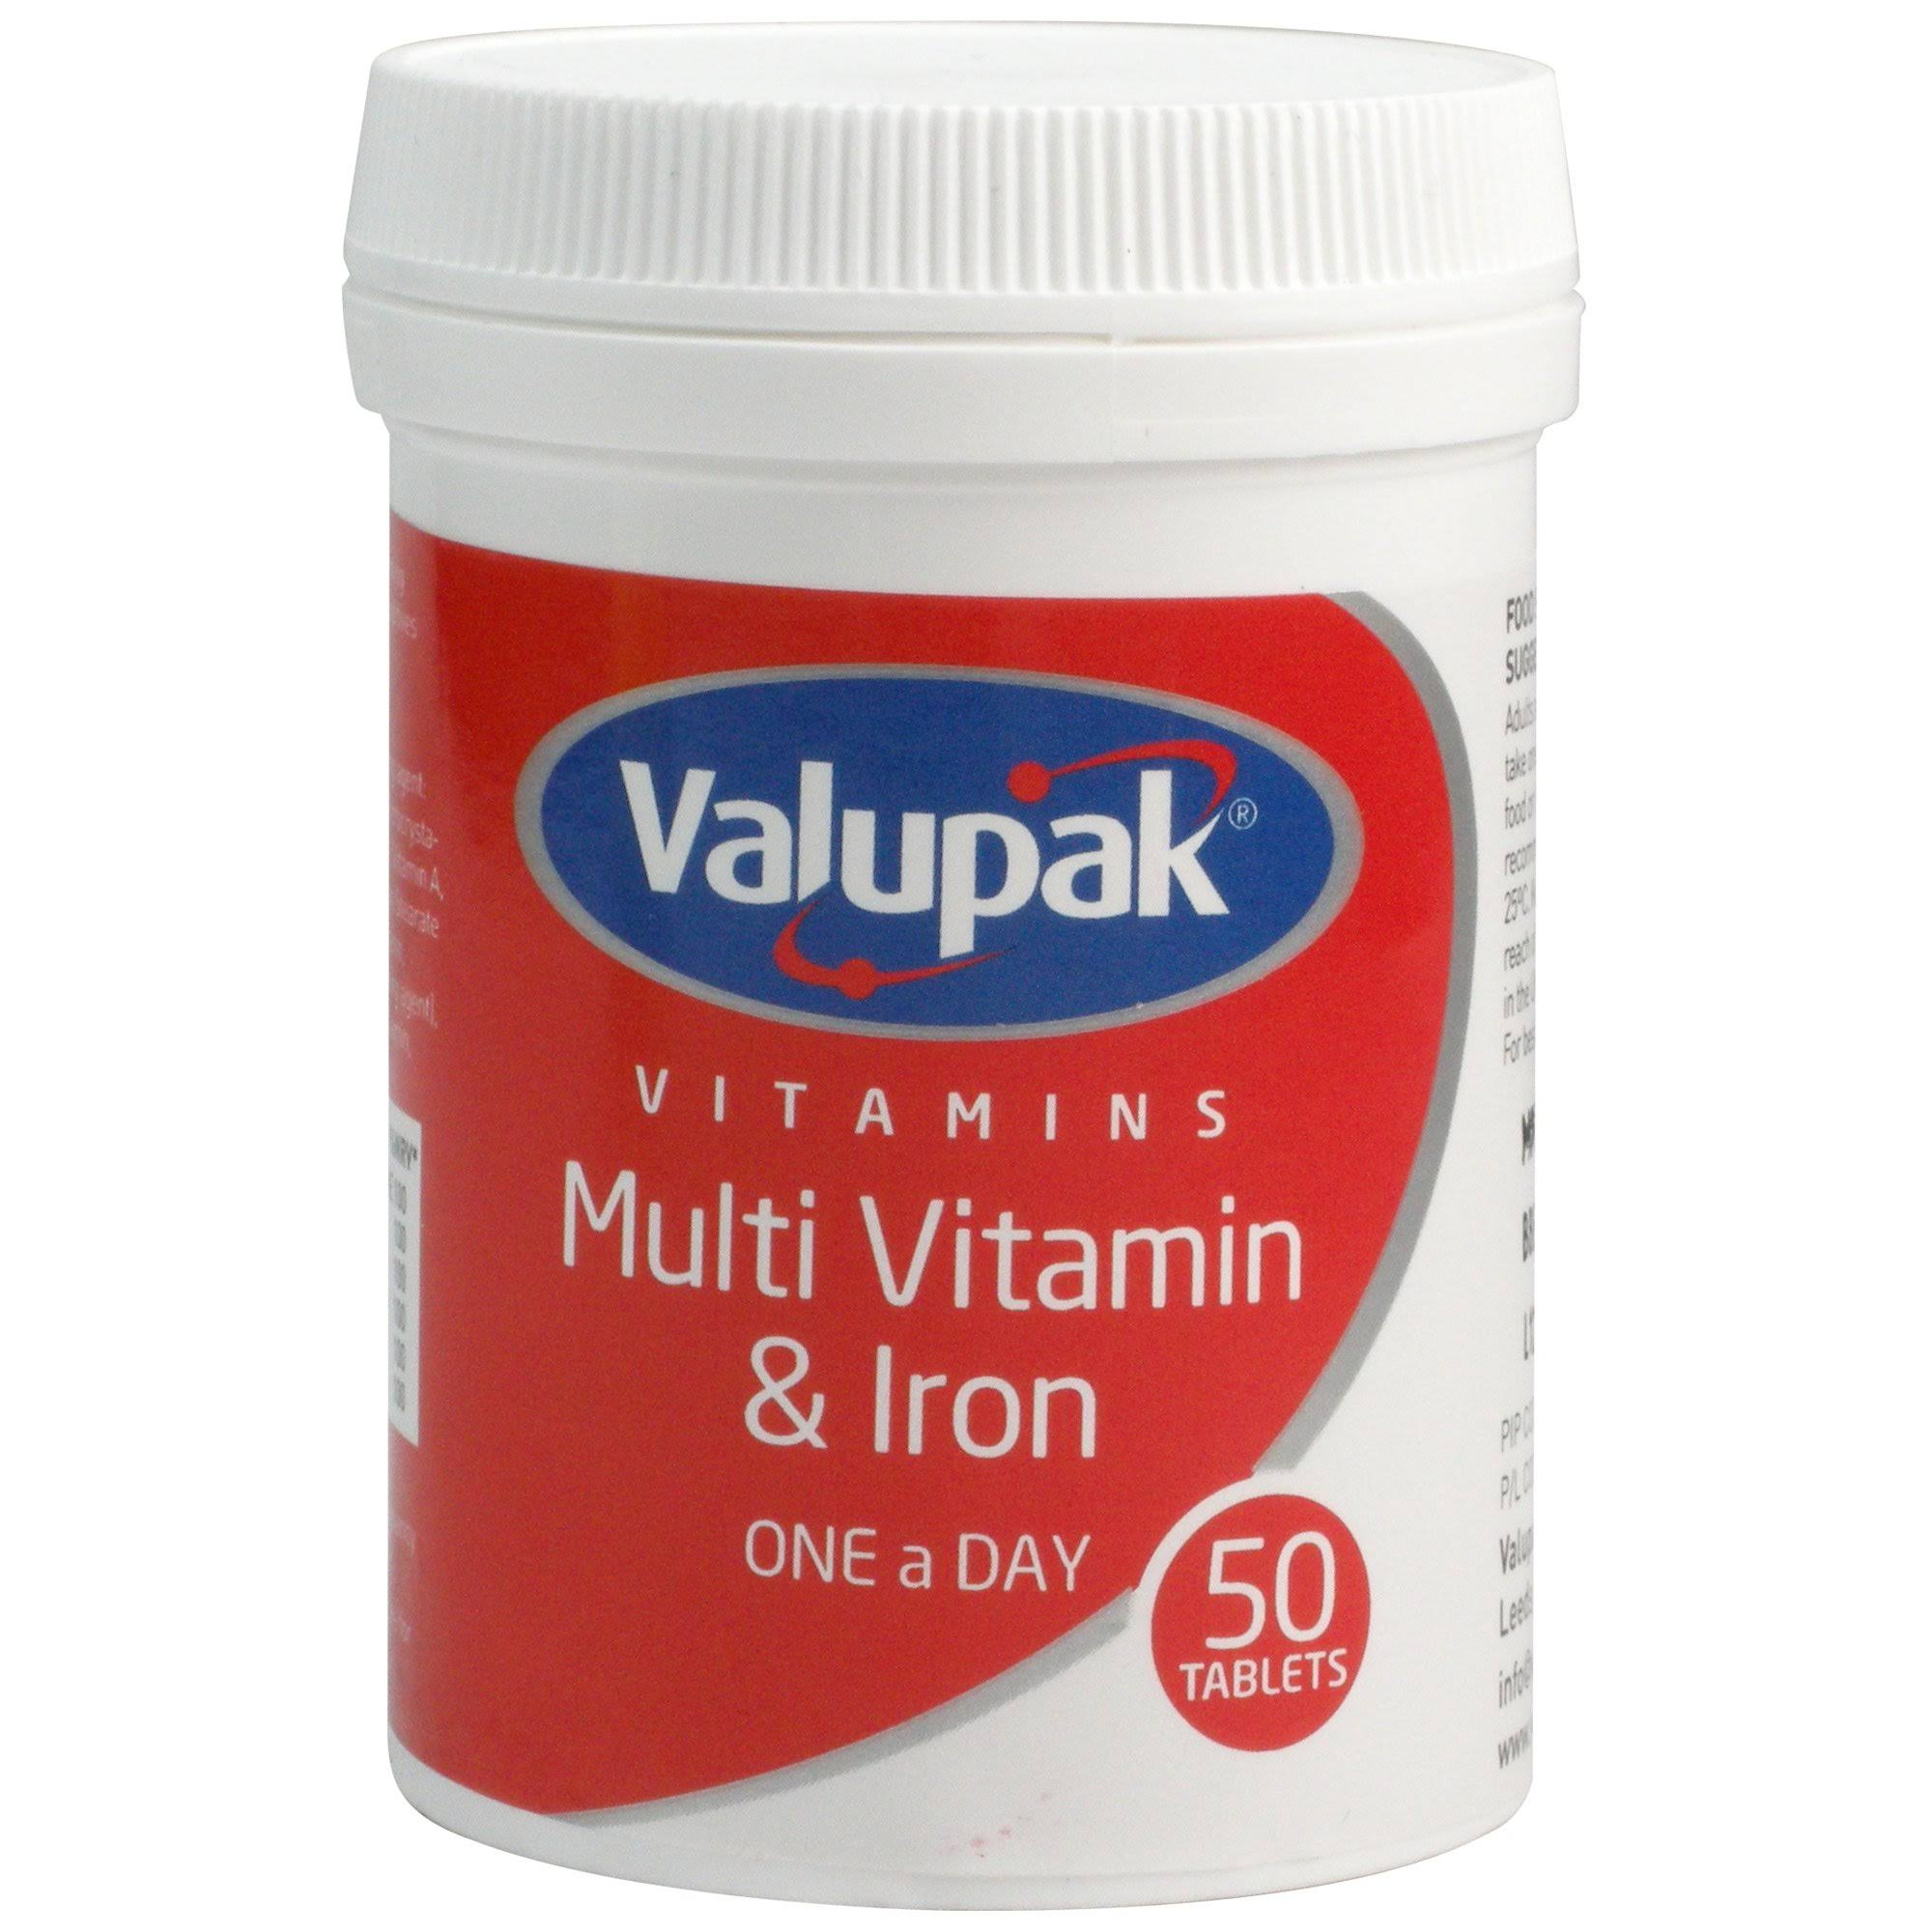 Valupak Multi Vitamin & Iron Tablet - 60 Tablets